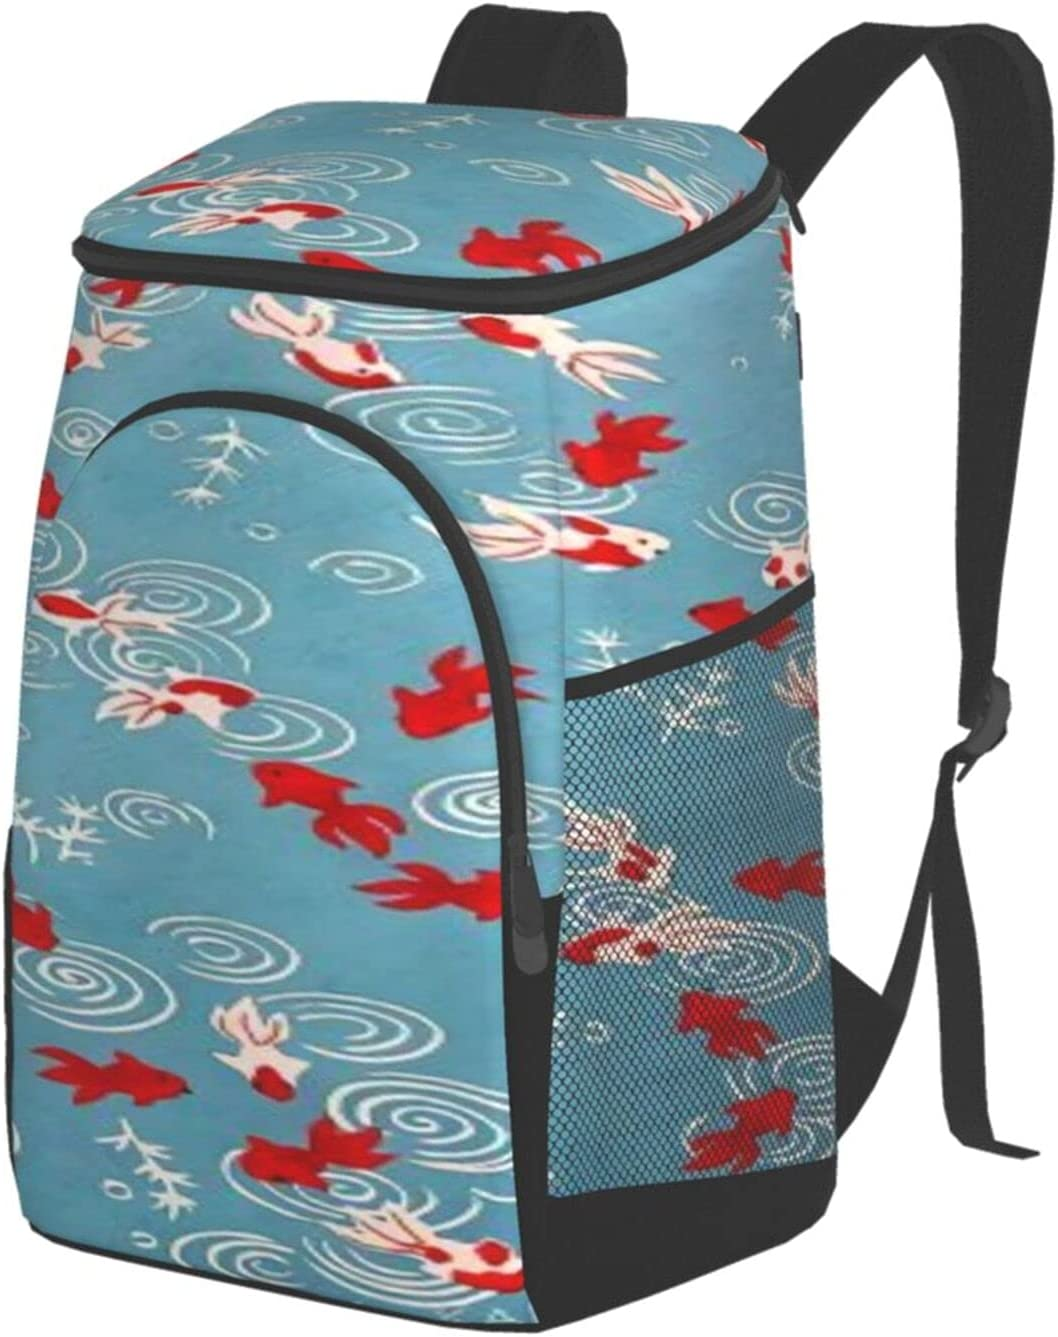 NDAQUC Goldfish Fireworks Game Outdoor Insulation Shoulder Bag P Max 90% Super beauty product restock quality top! OFF